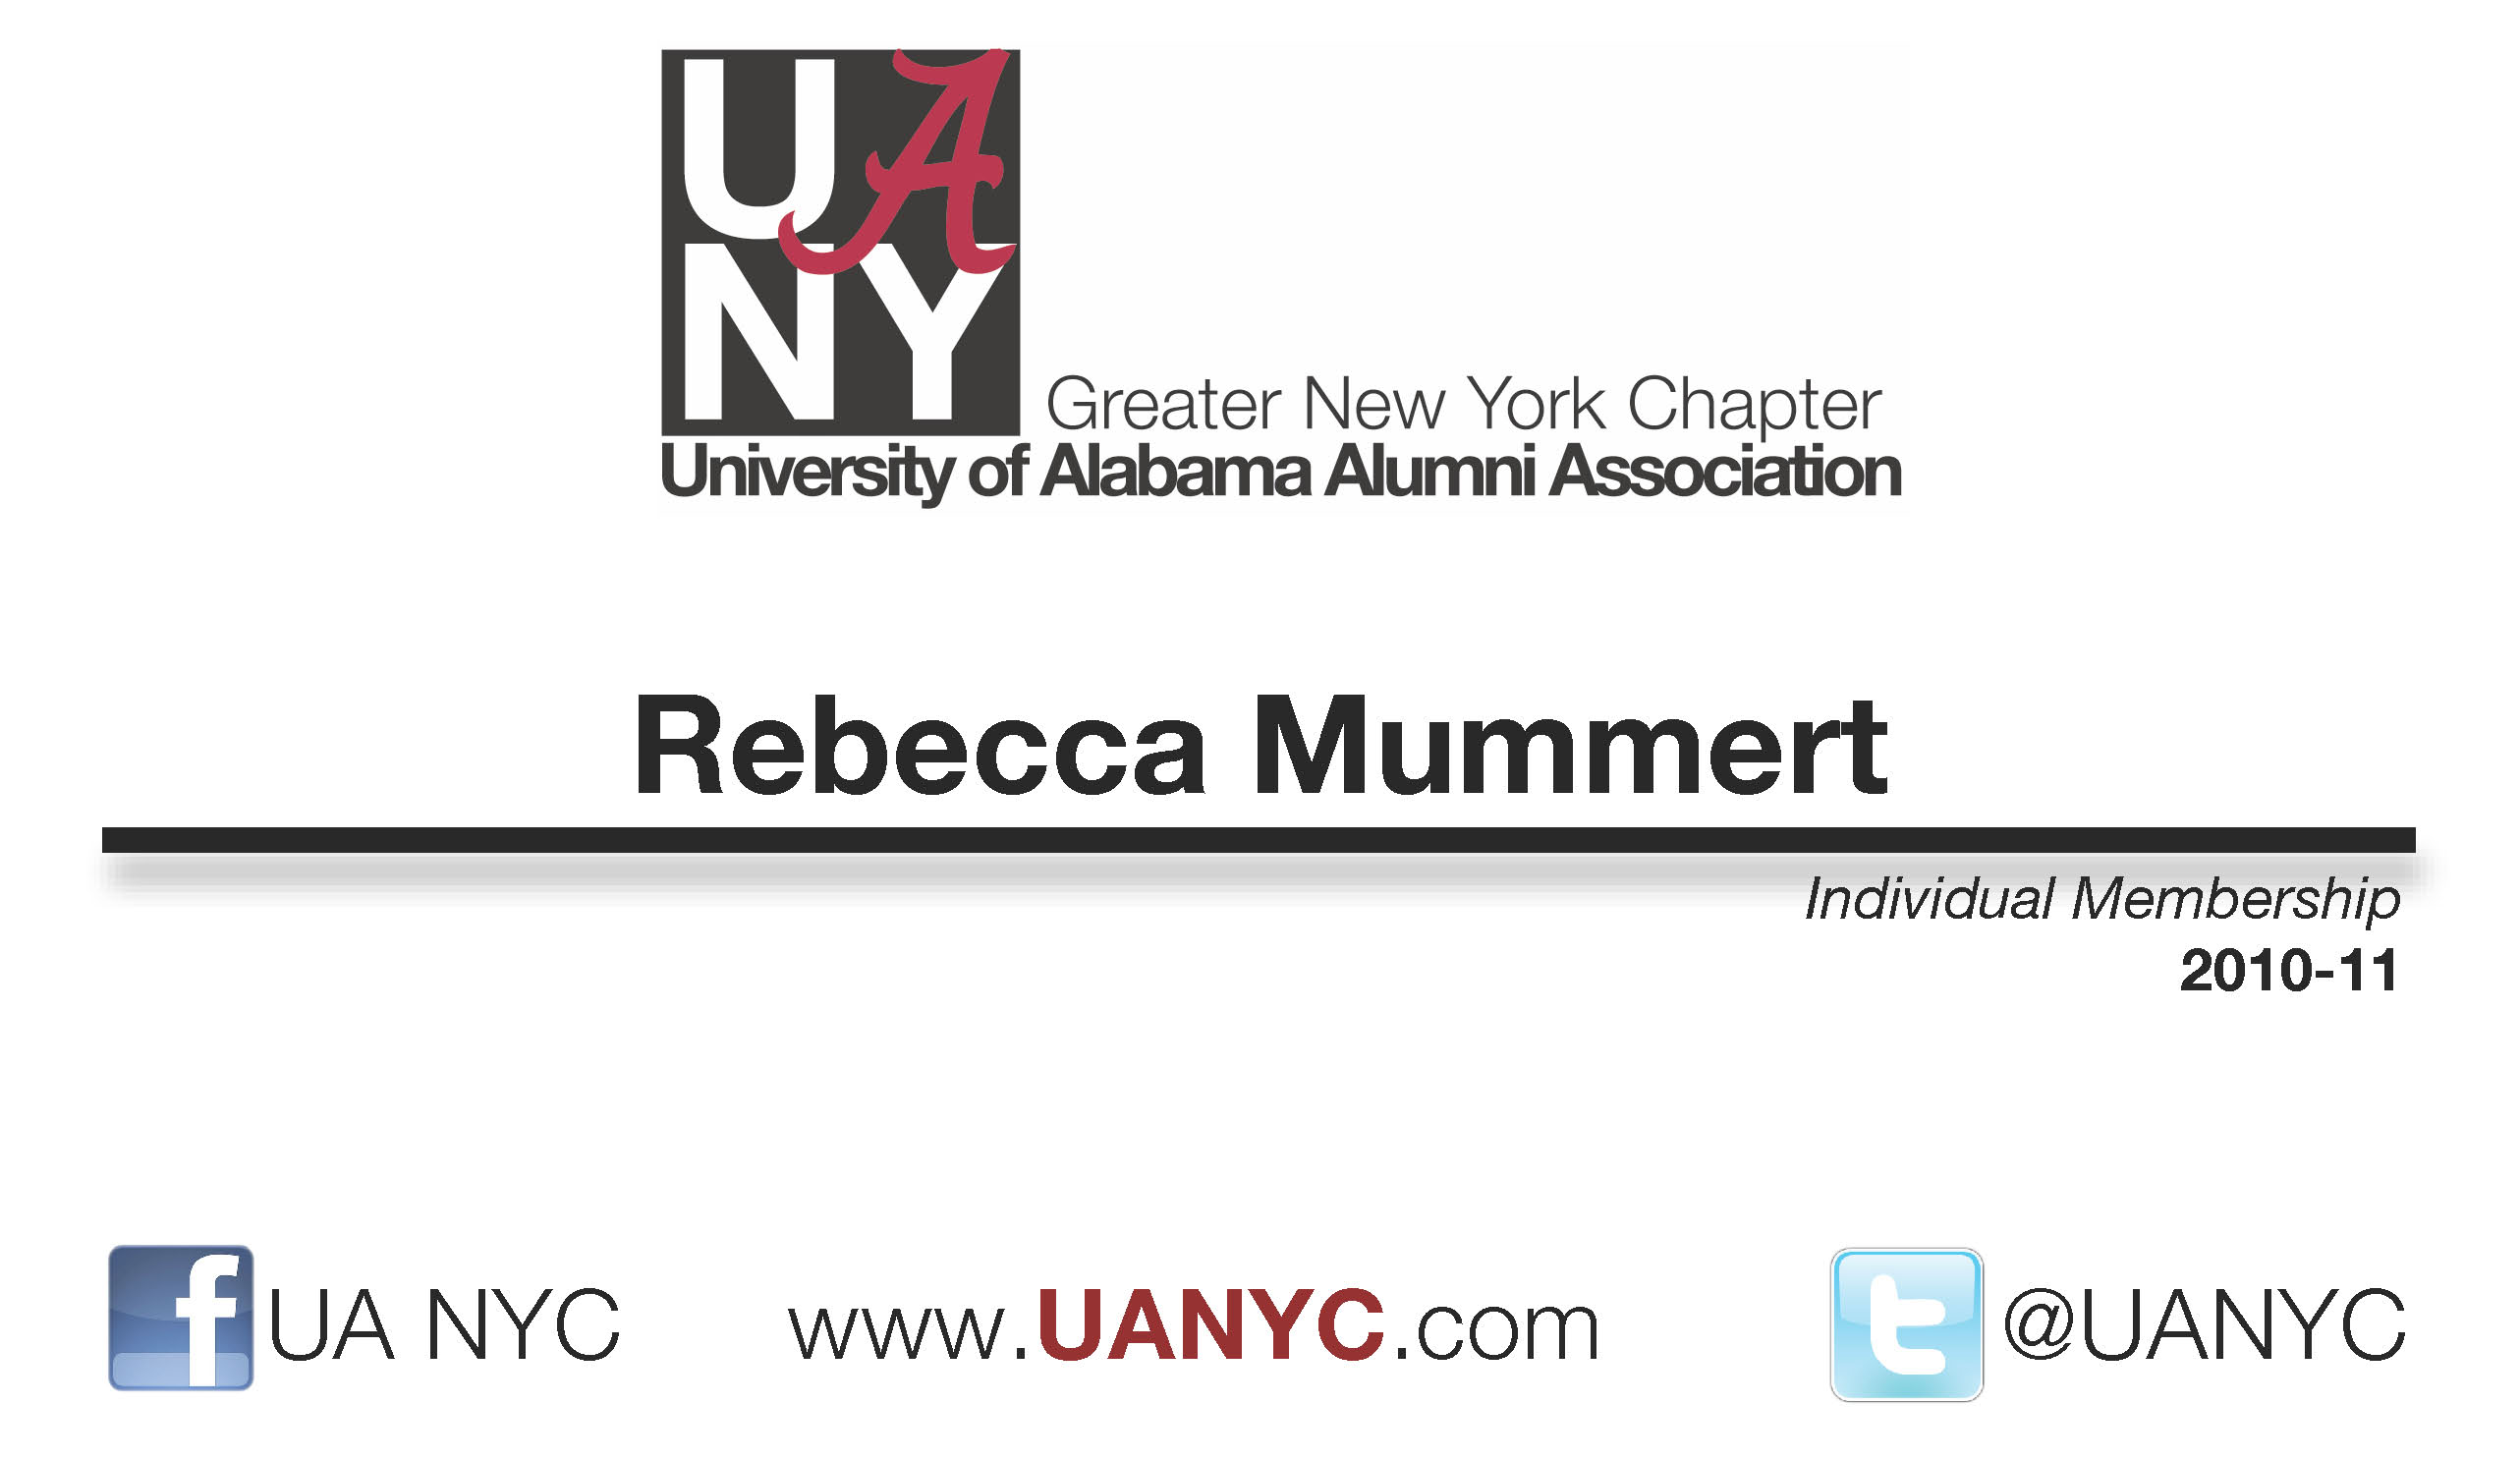 UANYC Membership Card